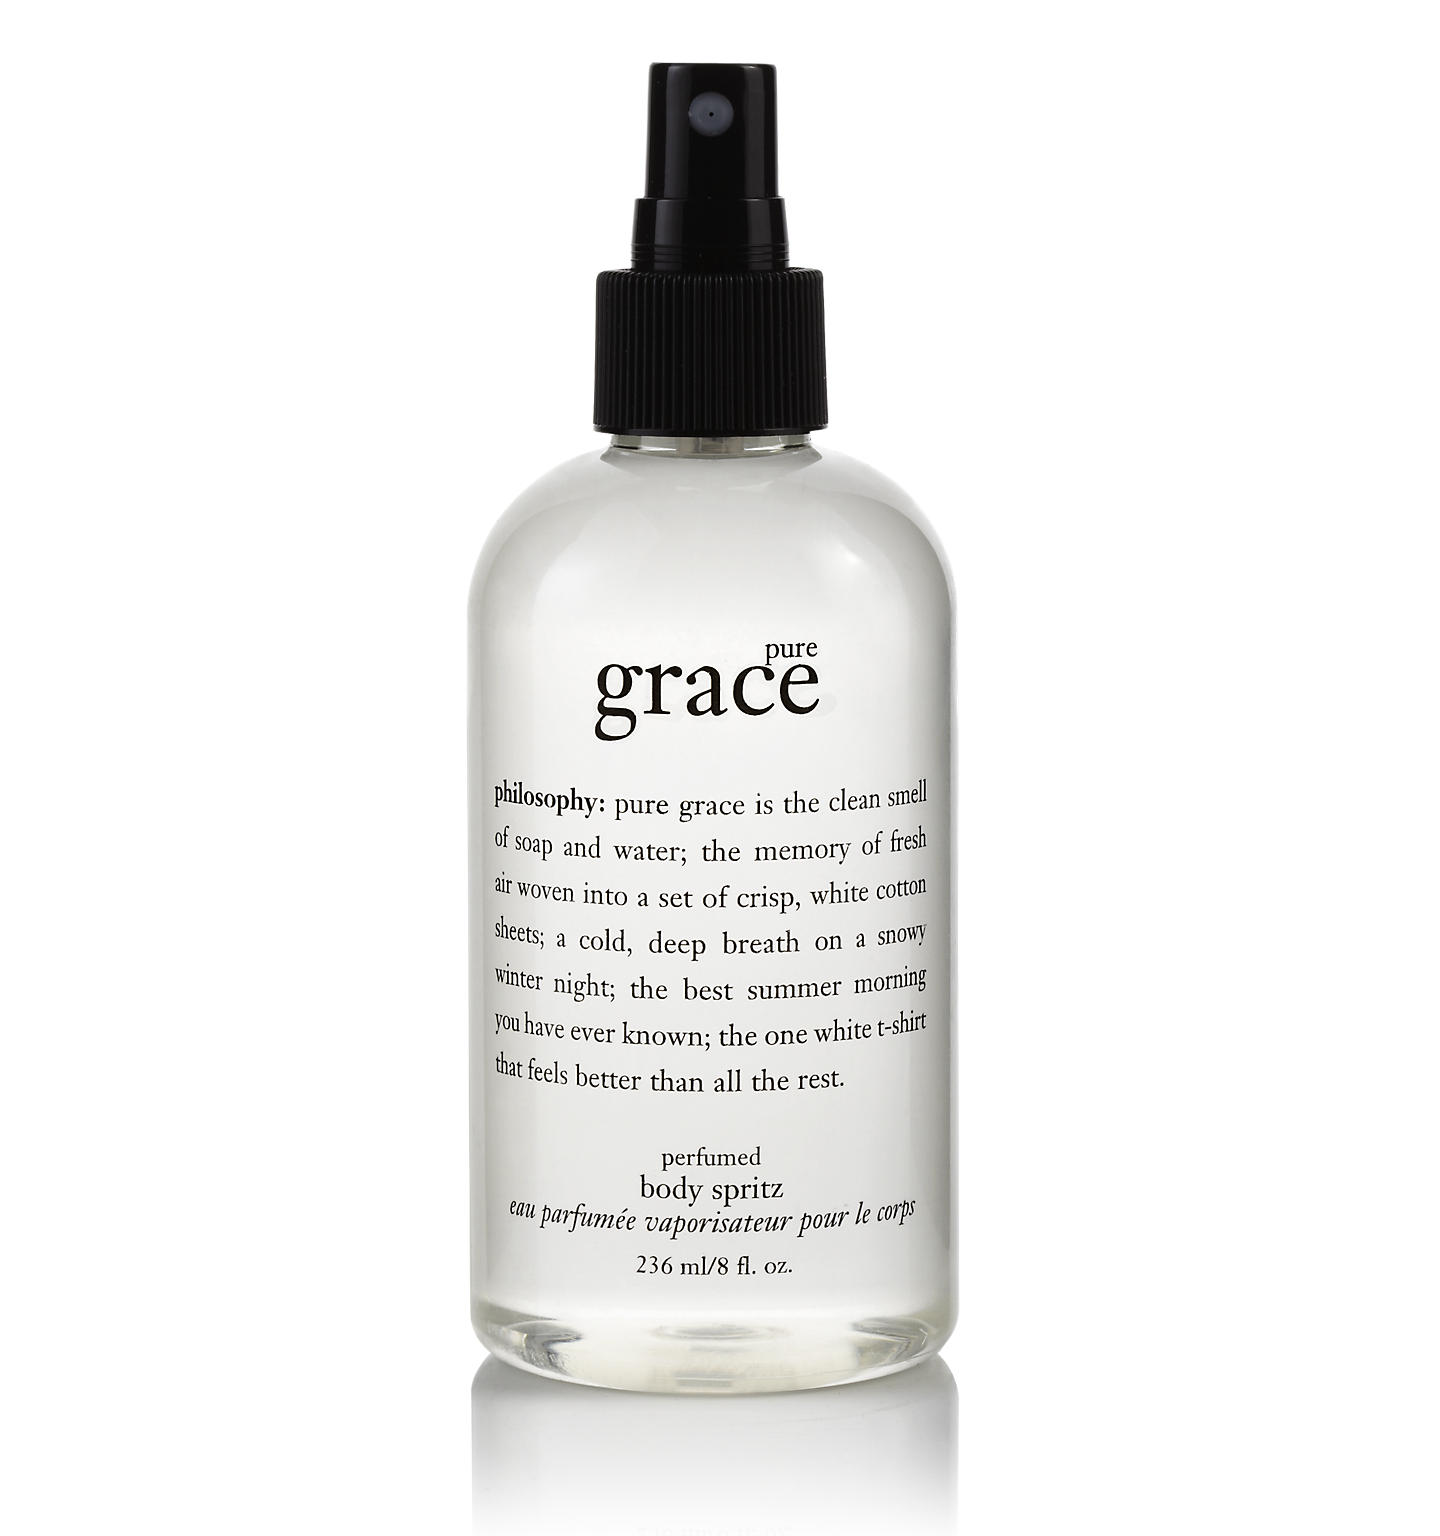 philosophy, pure grace body spritz